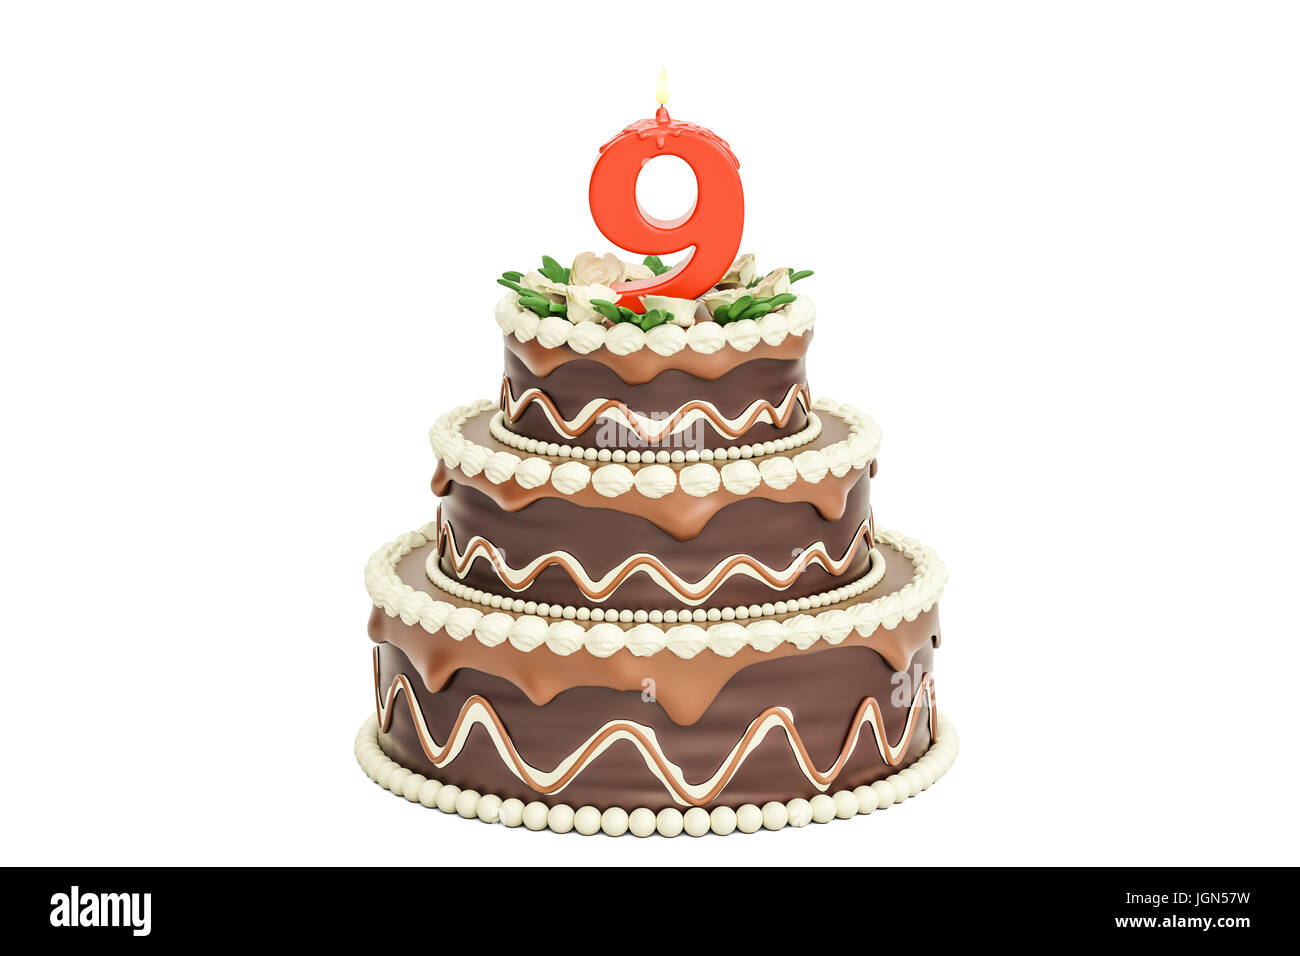 Chocolate Birthday Cake With Candle Number 9 3D Rendering Isolated On White Background